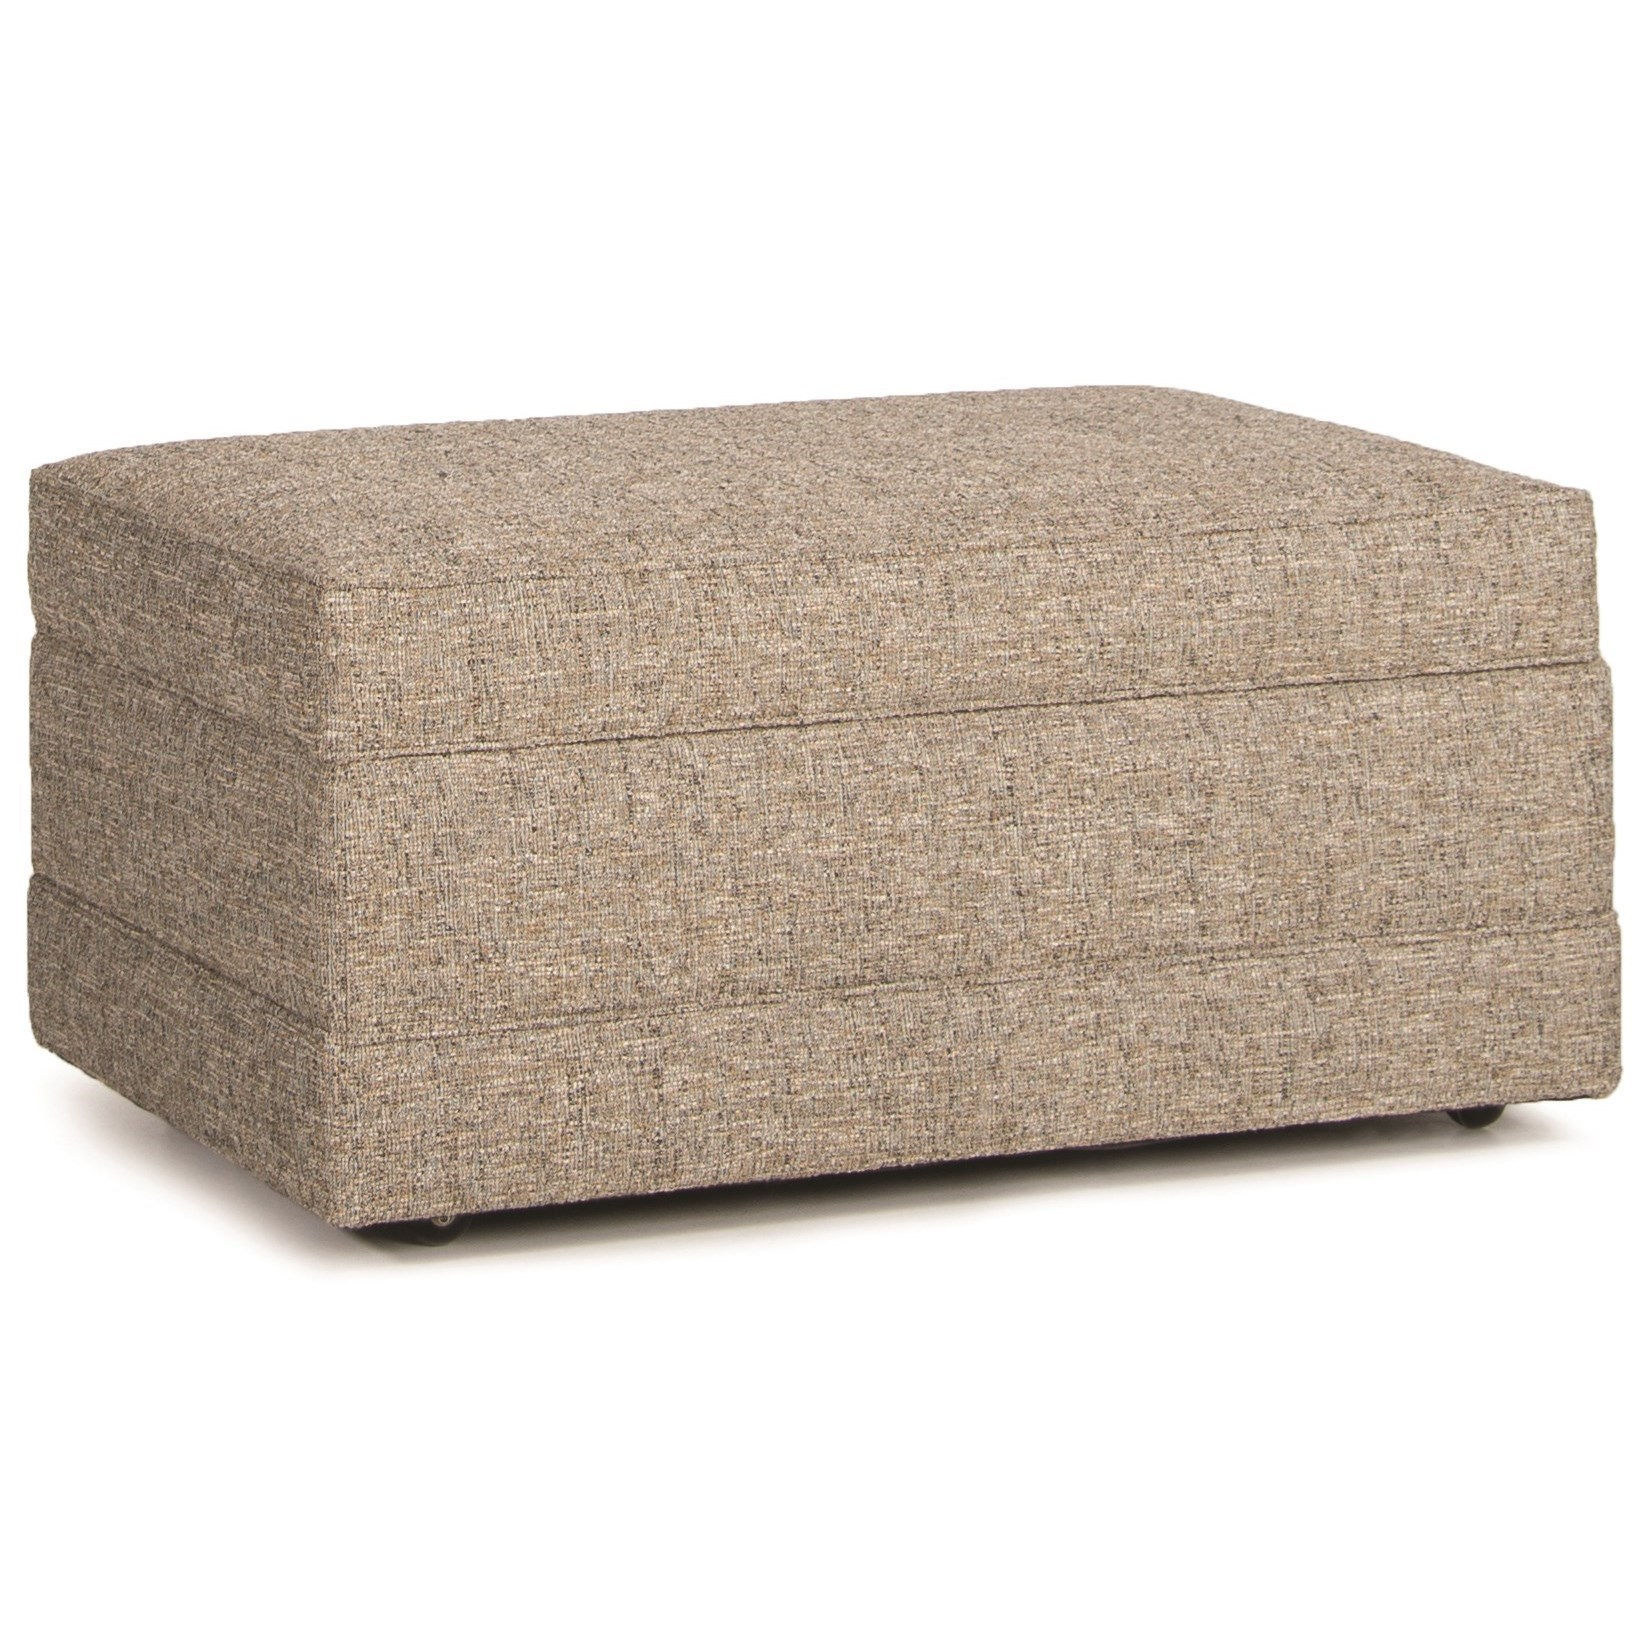 Smith Brothers 900 Storage Ottoman With Baseband And Hidden Casters